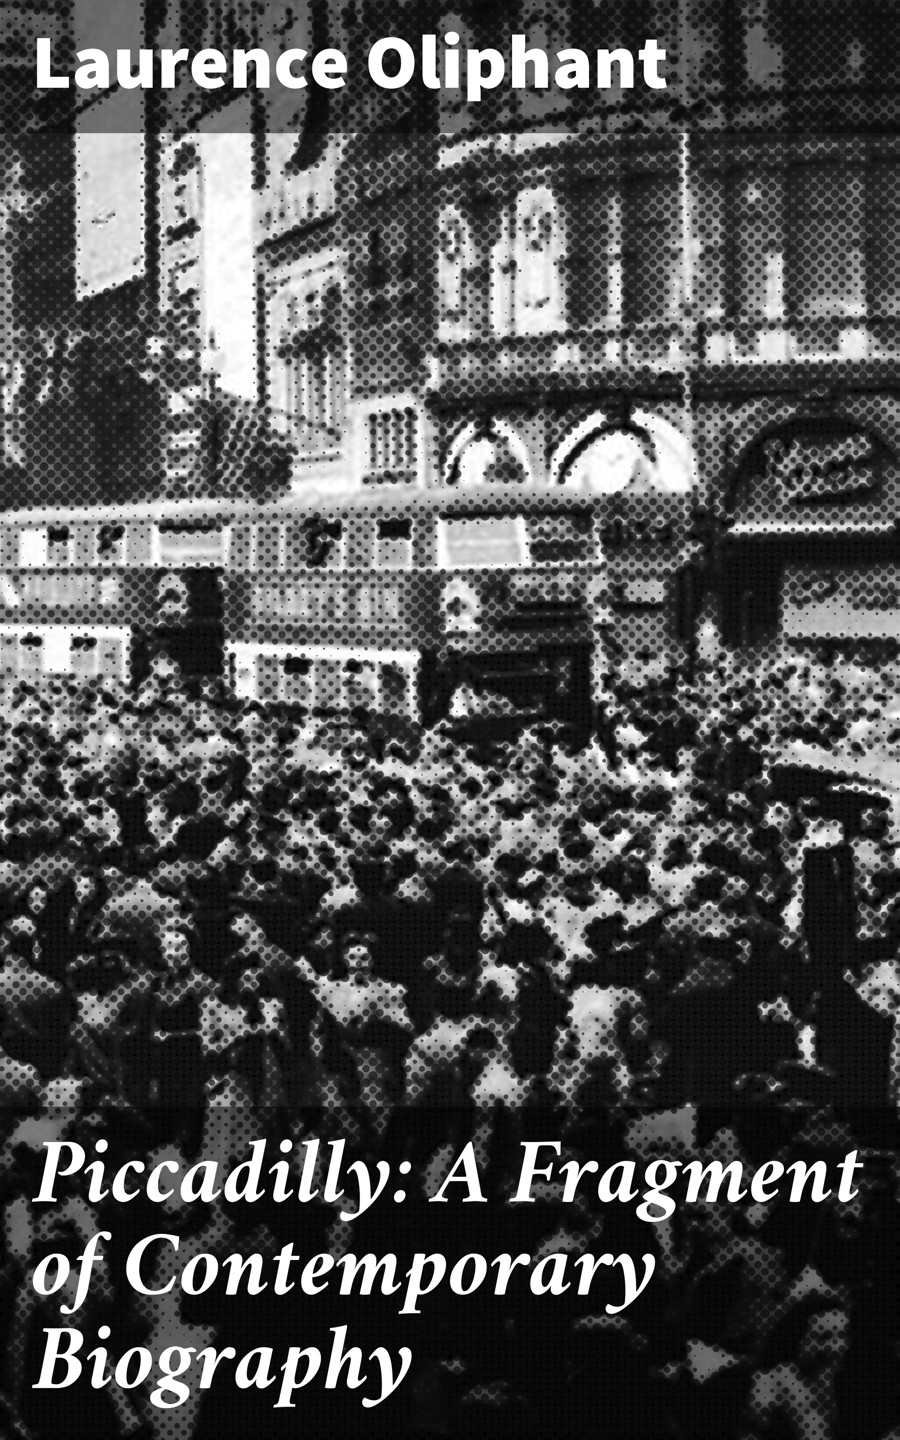 Laurence Oliphant Piccadilly: A Fragment of Contemporary Biography w northcutt mitterrand a political biography